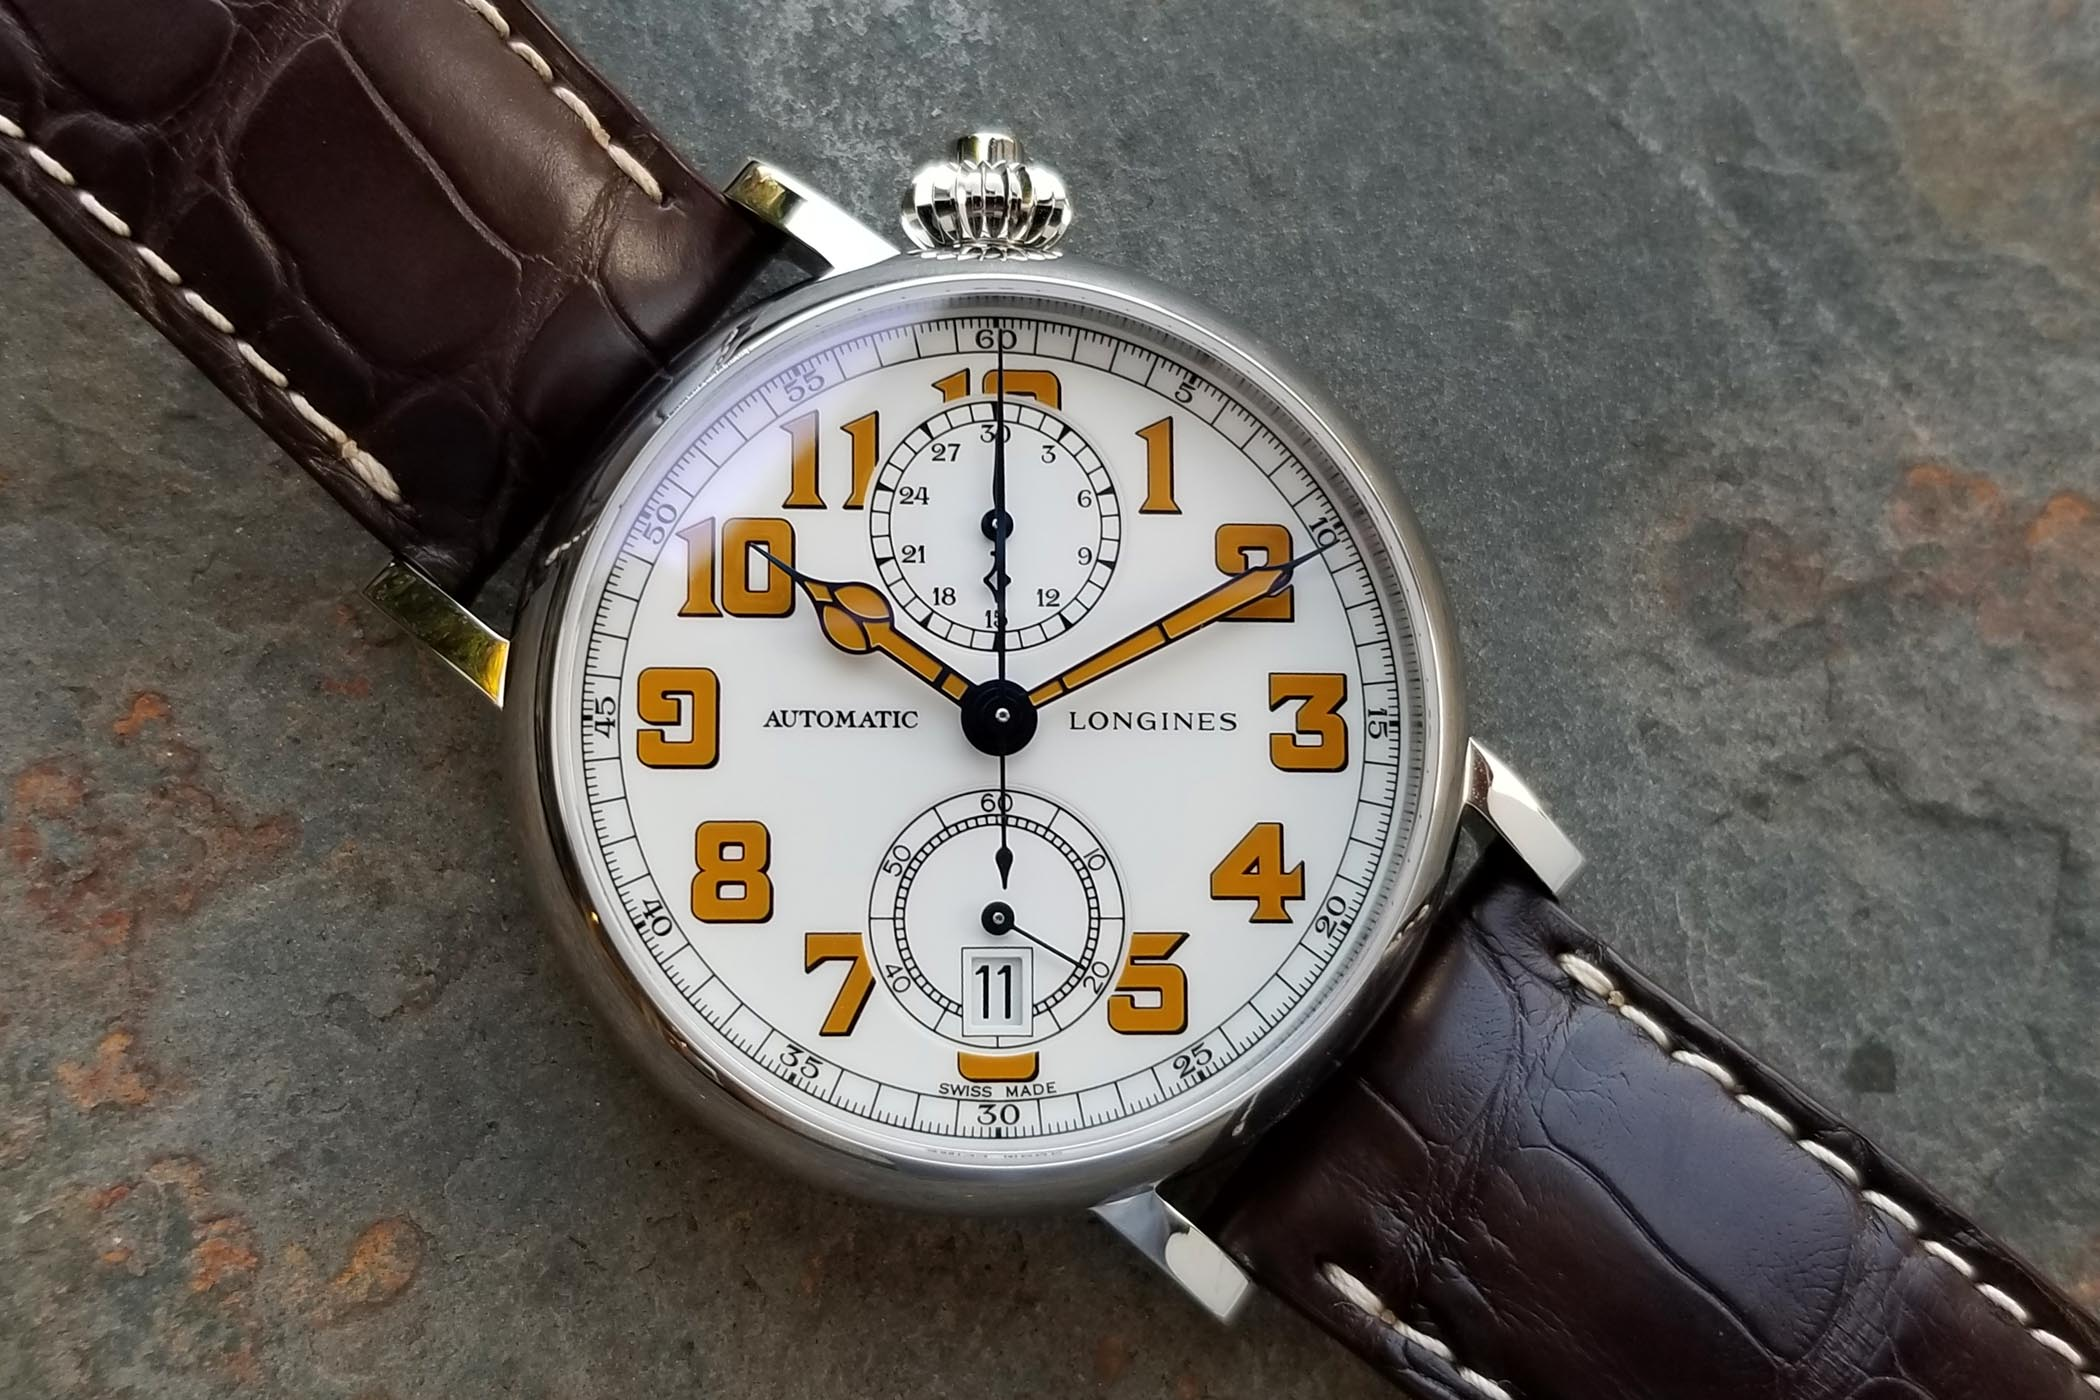 Longines-Avigation-Type-A-7-1935-Review-4.jpg